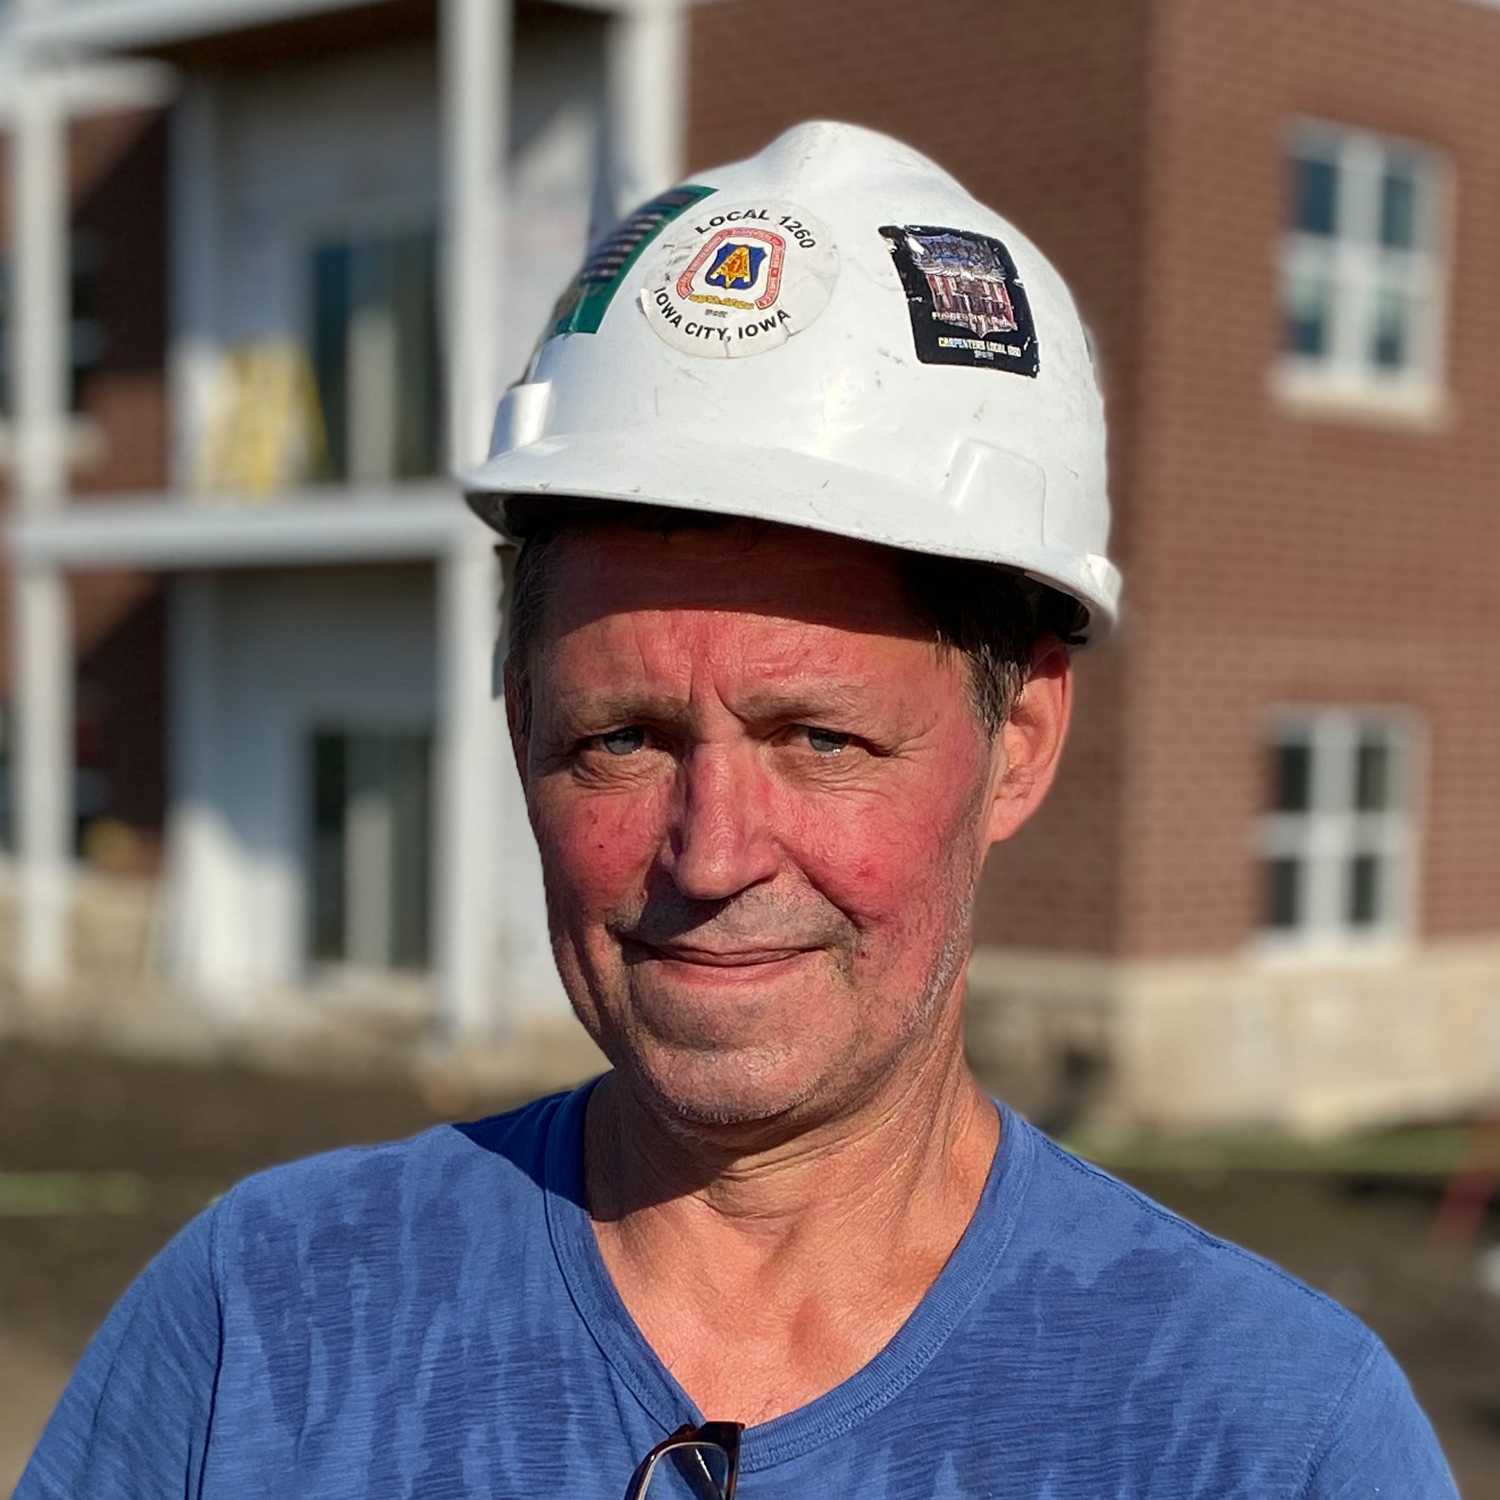 Image of Brad Anderson, Carpentry Foreman for Heartland Companies